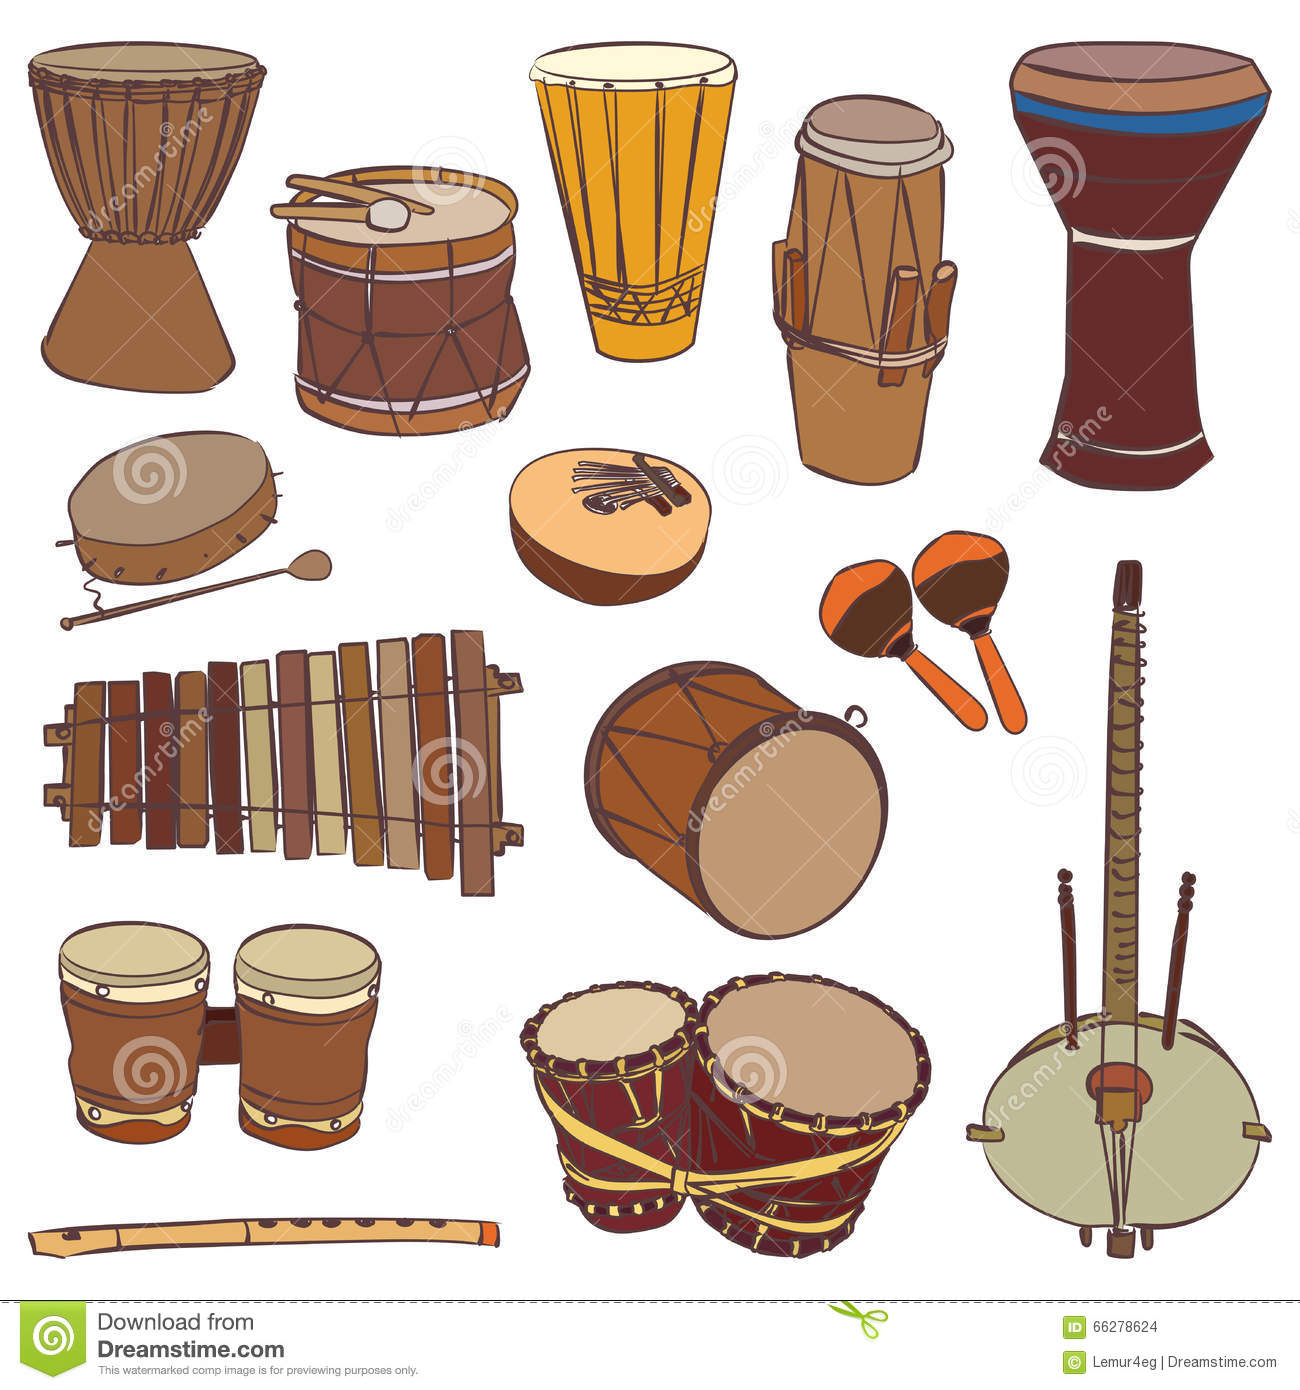 African Traditional Musical Instruments Stock Vector - Image: 65455288